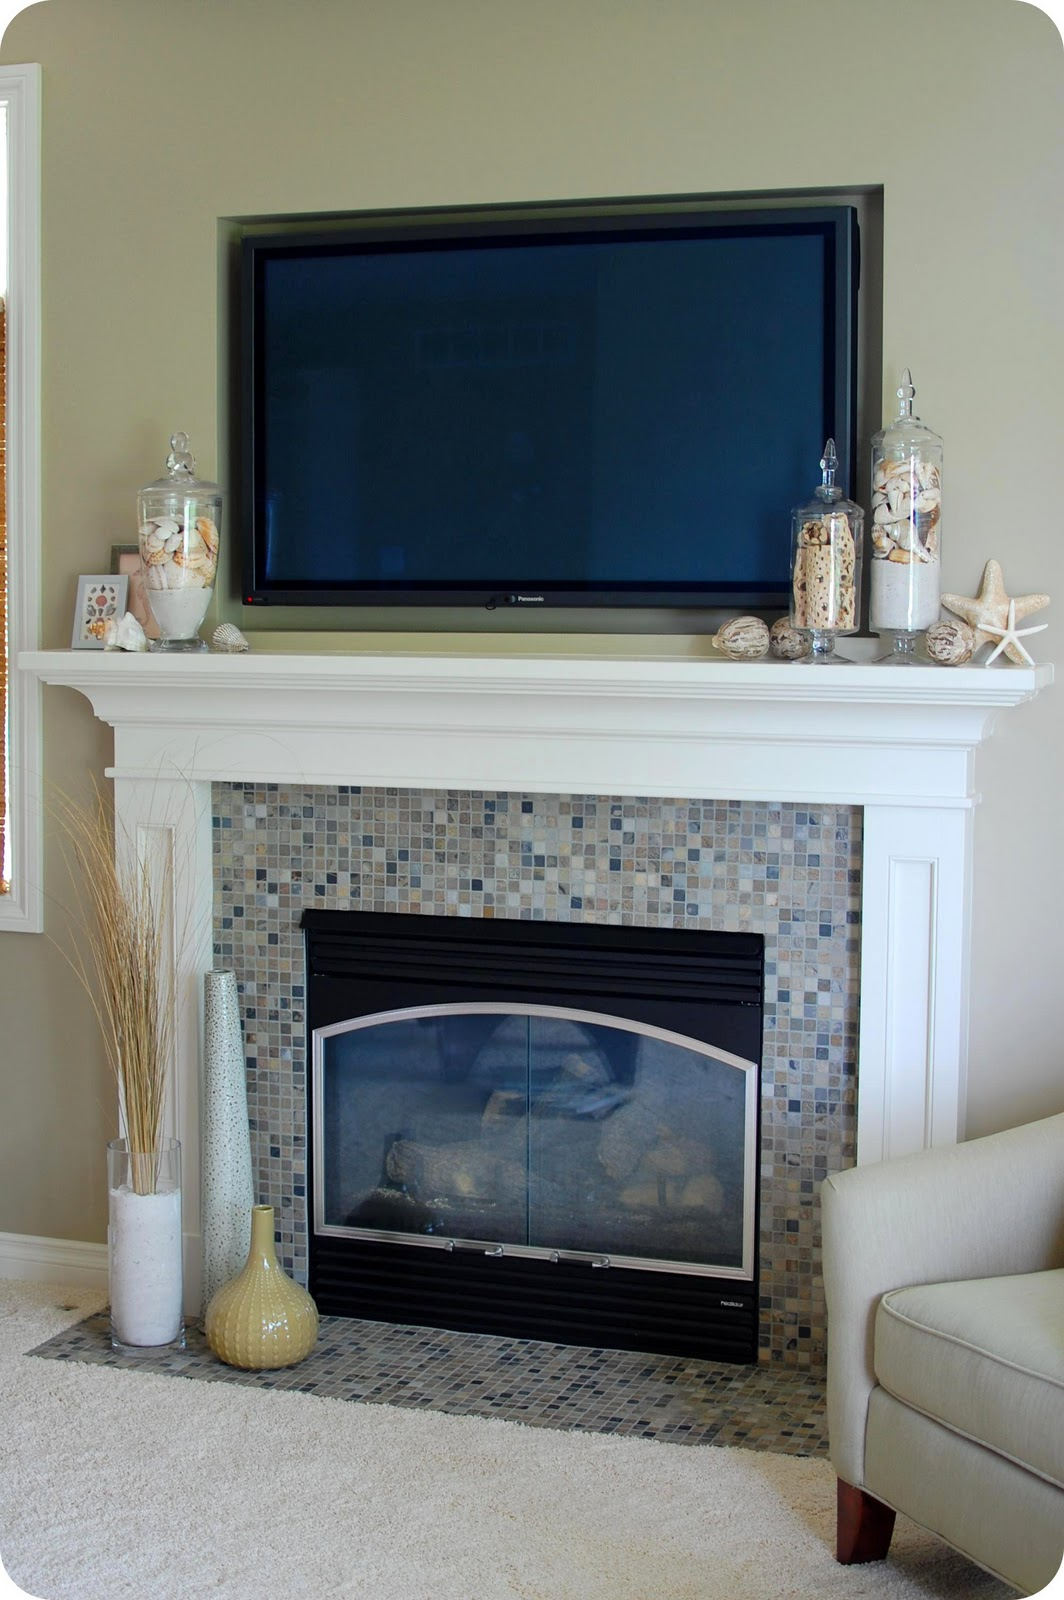 Fireplace Mantel Decor With Tv 33 Shades Of Green Decorating Around The Tv